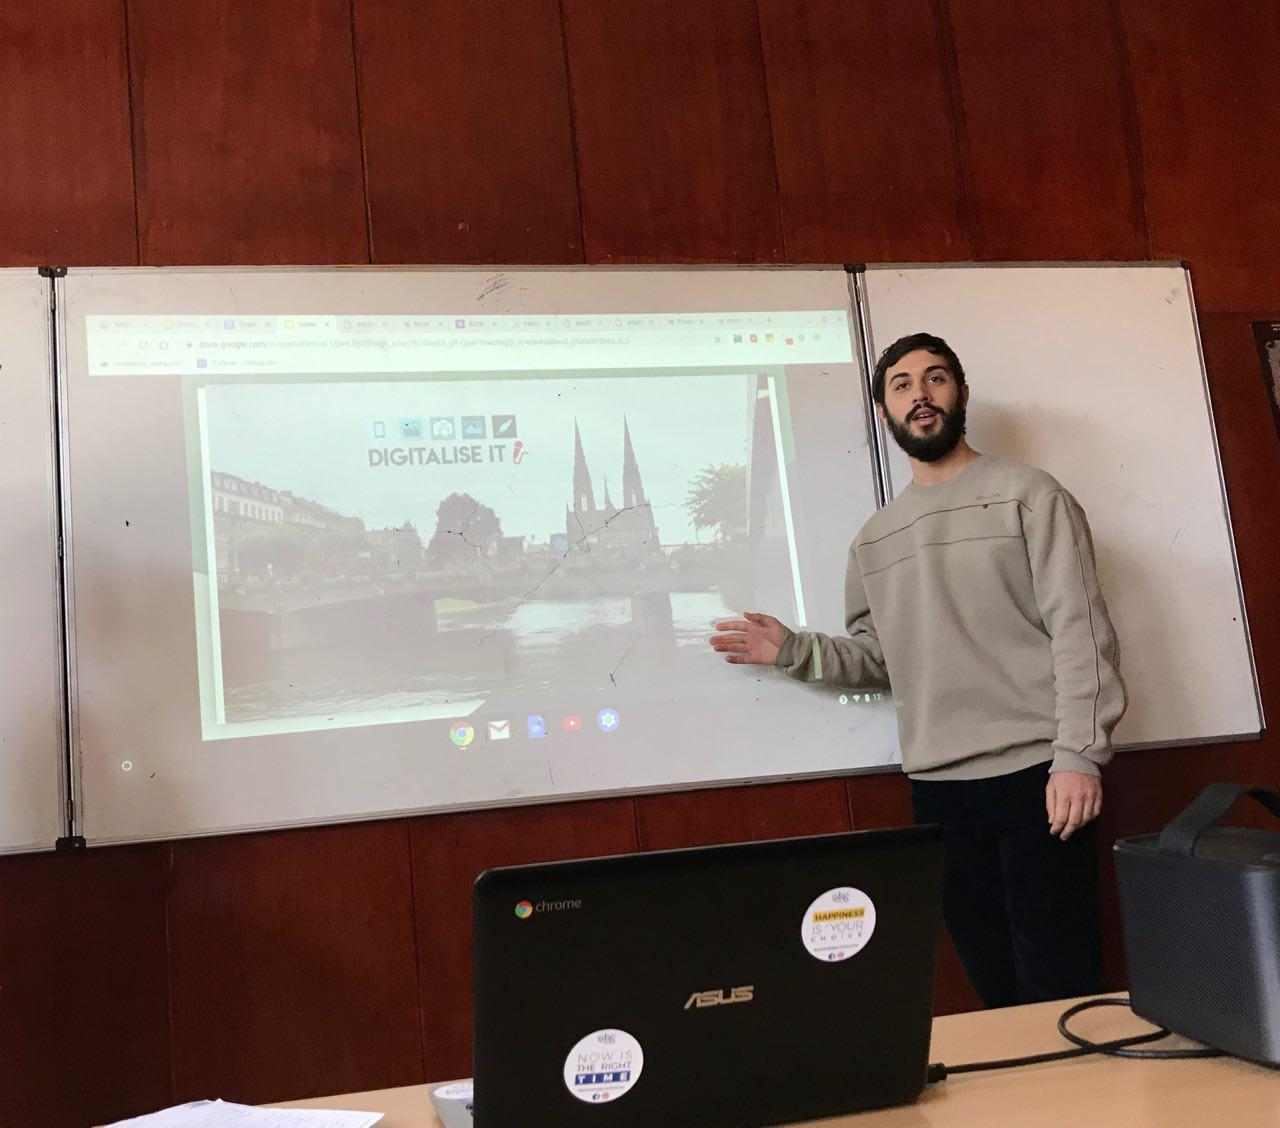 Active Bulgarian Society Team Organised a Local Workshop as Part of Digitalise IT!